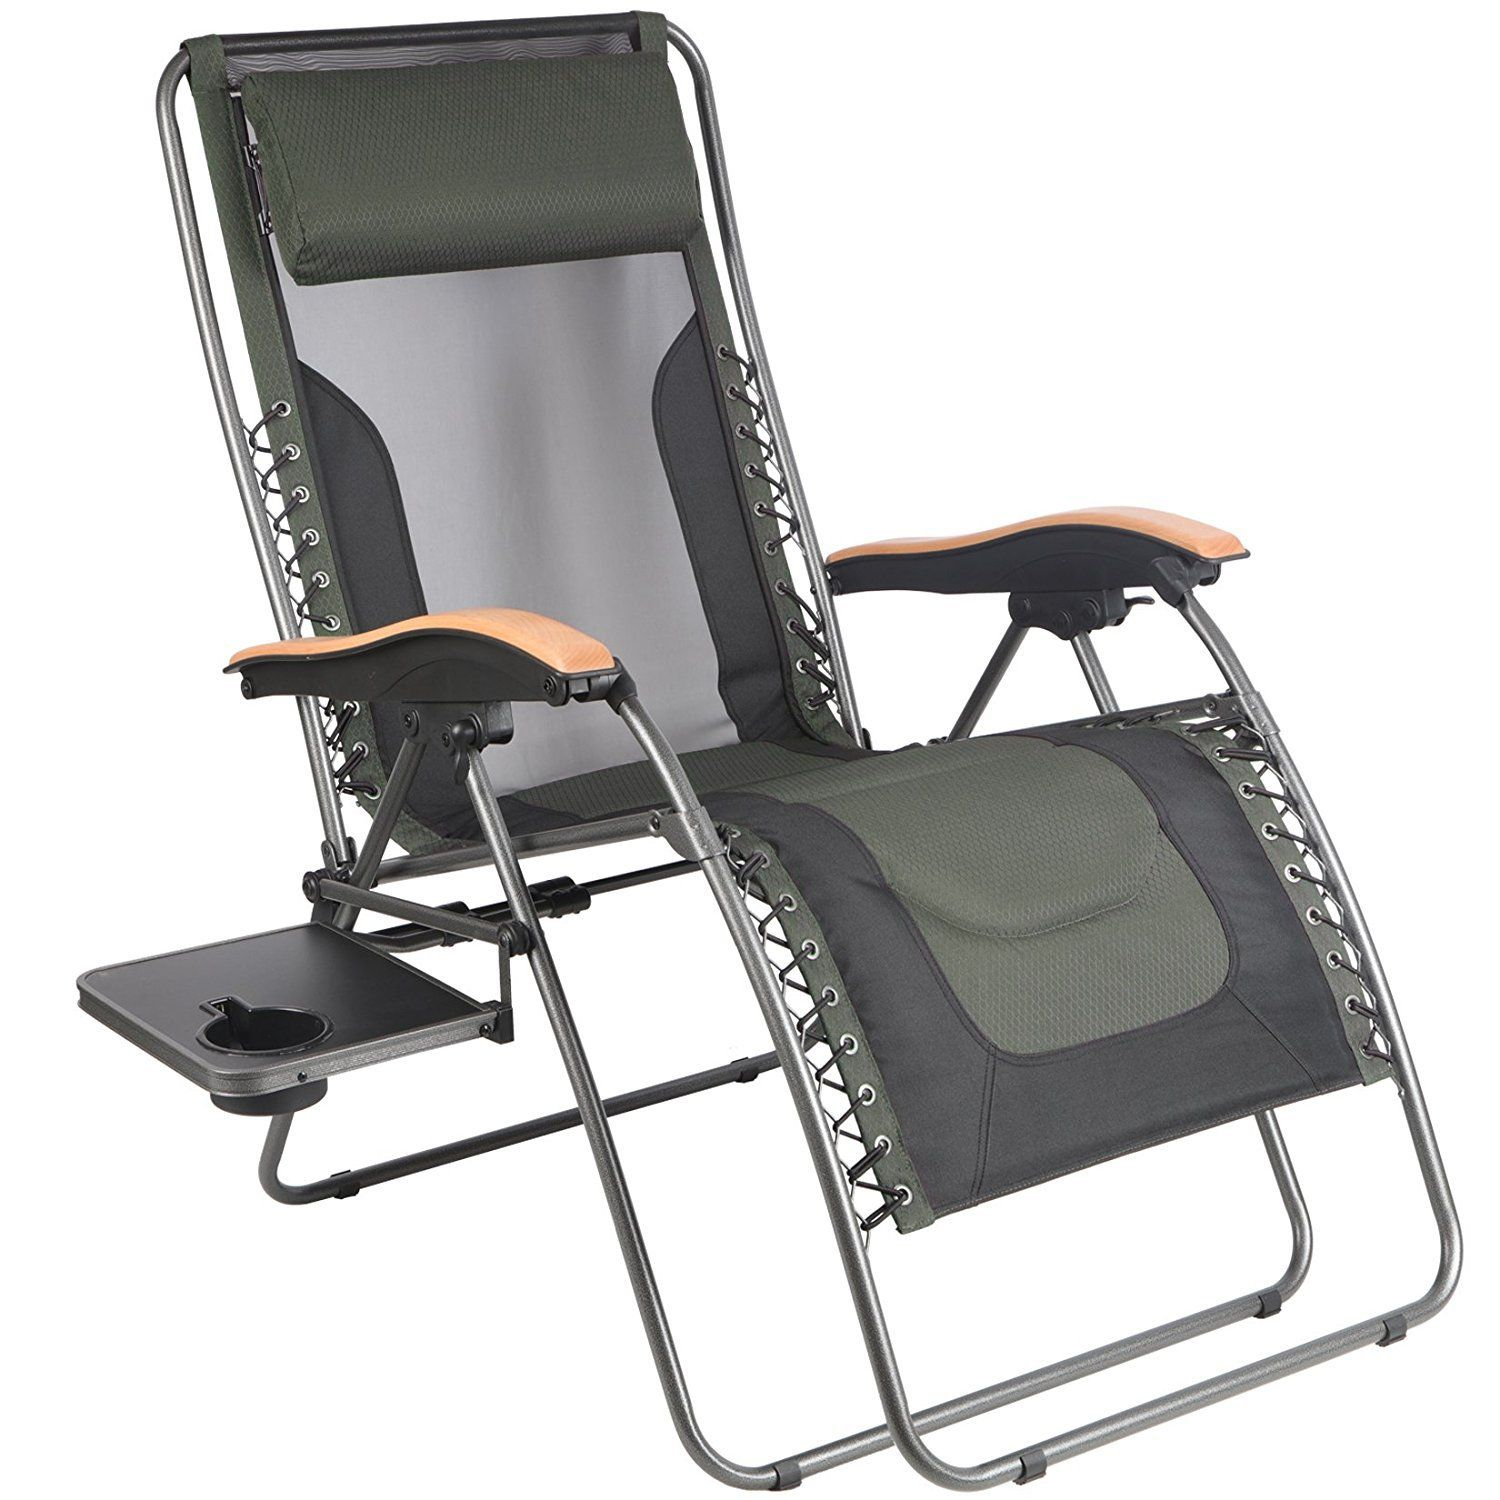 The Portal Oversized Mesh Back Zero Gravity Recliner Chair Patio Lounge Chairs Zero Gravity Recliner Patio Lounge